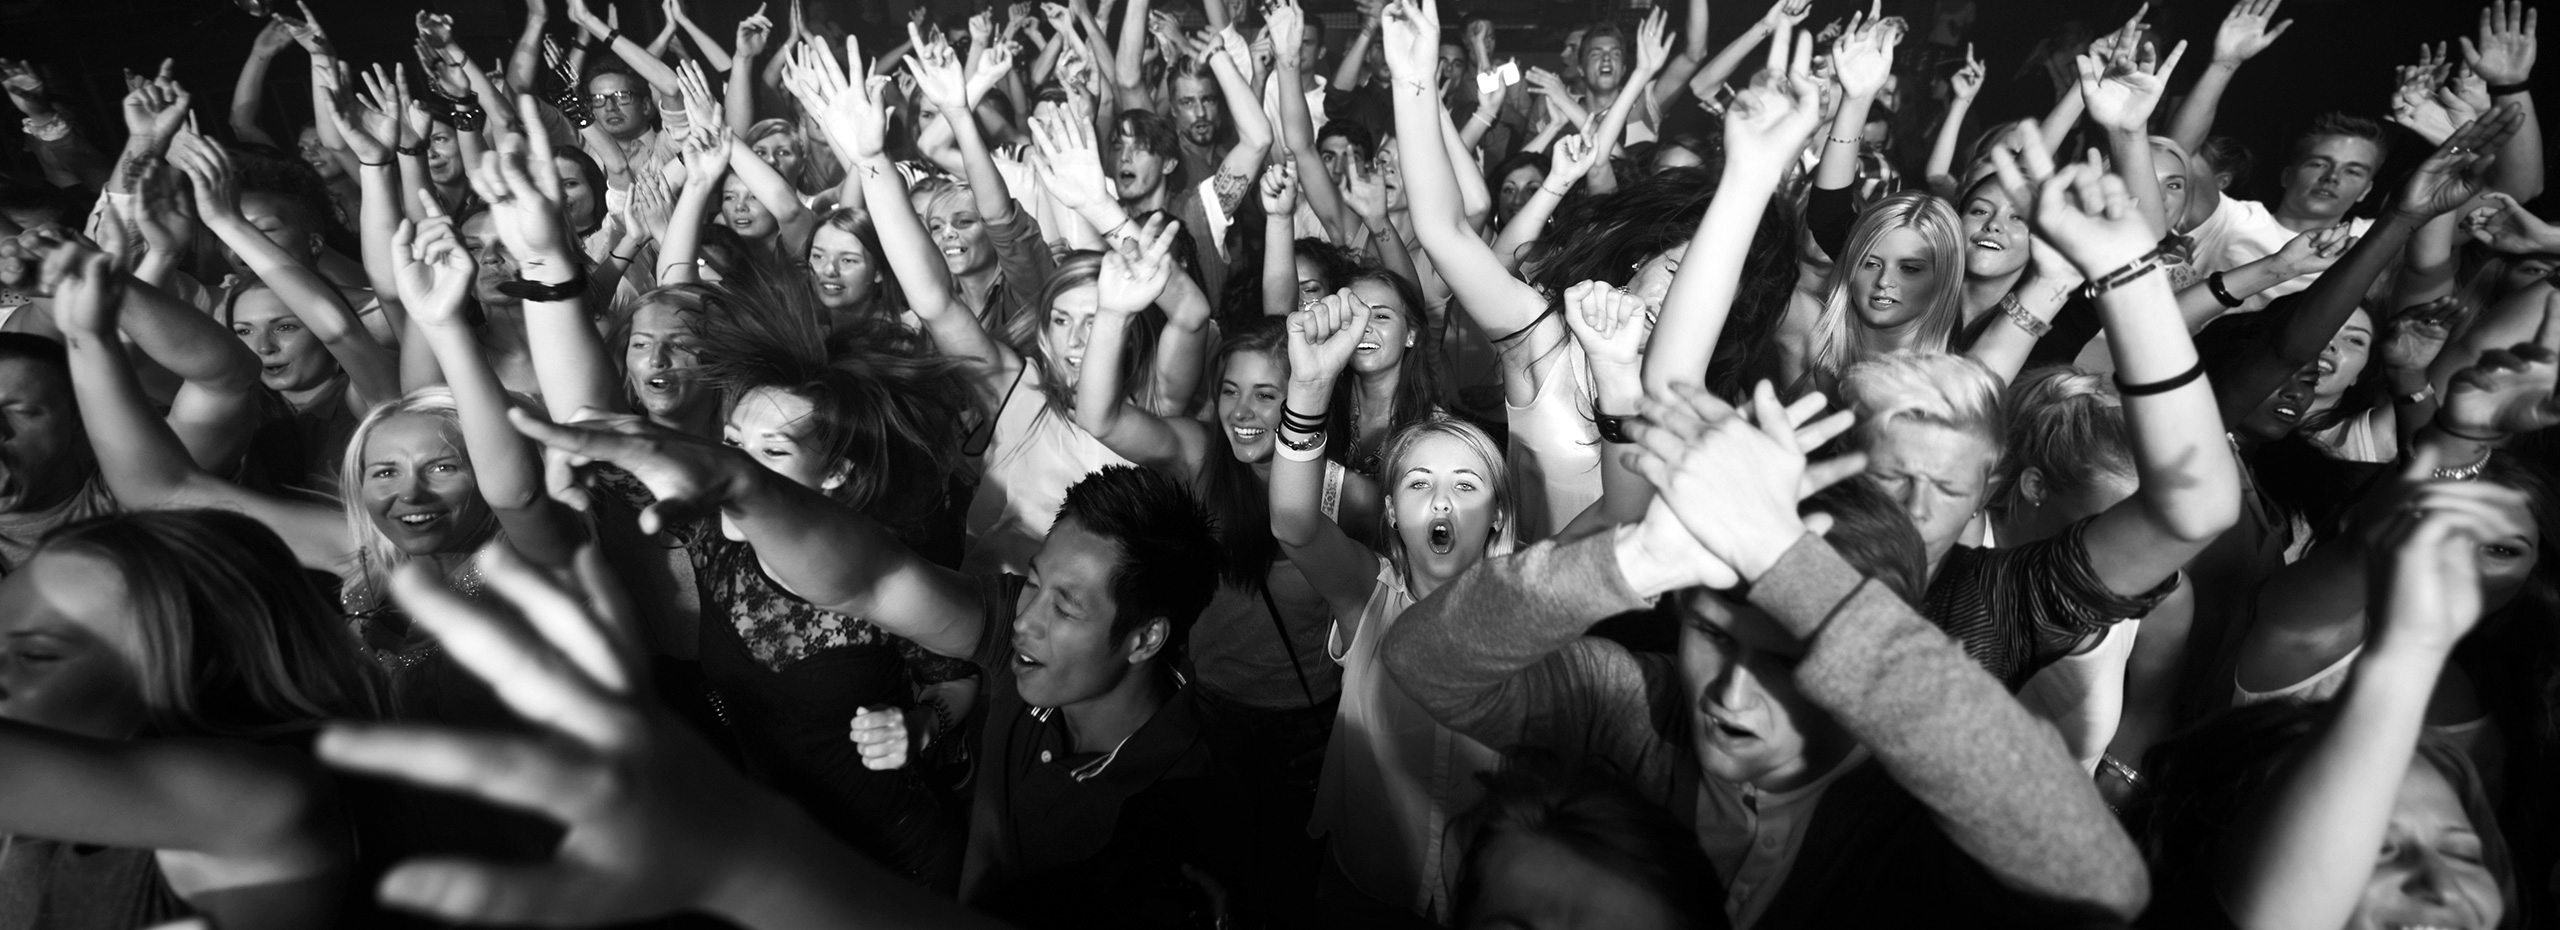 Black & White Photo of Concert Crowd